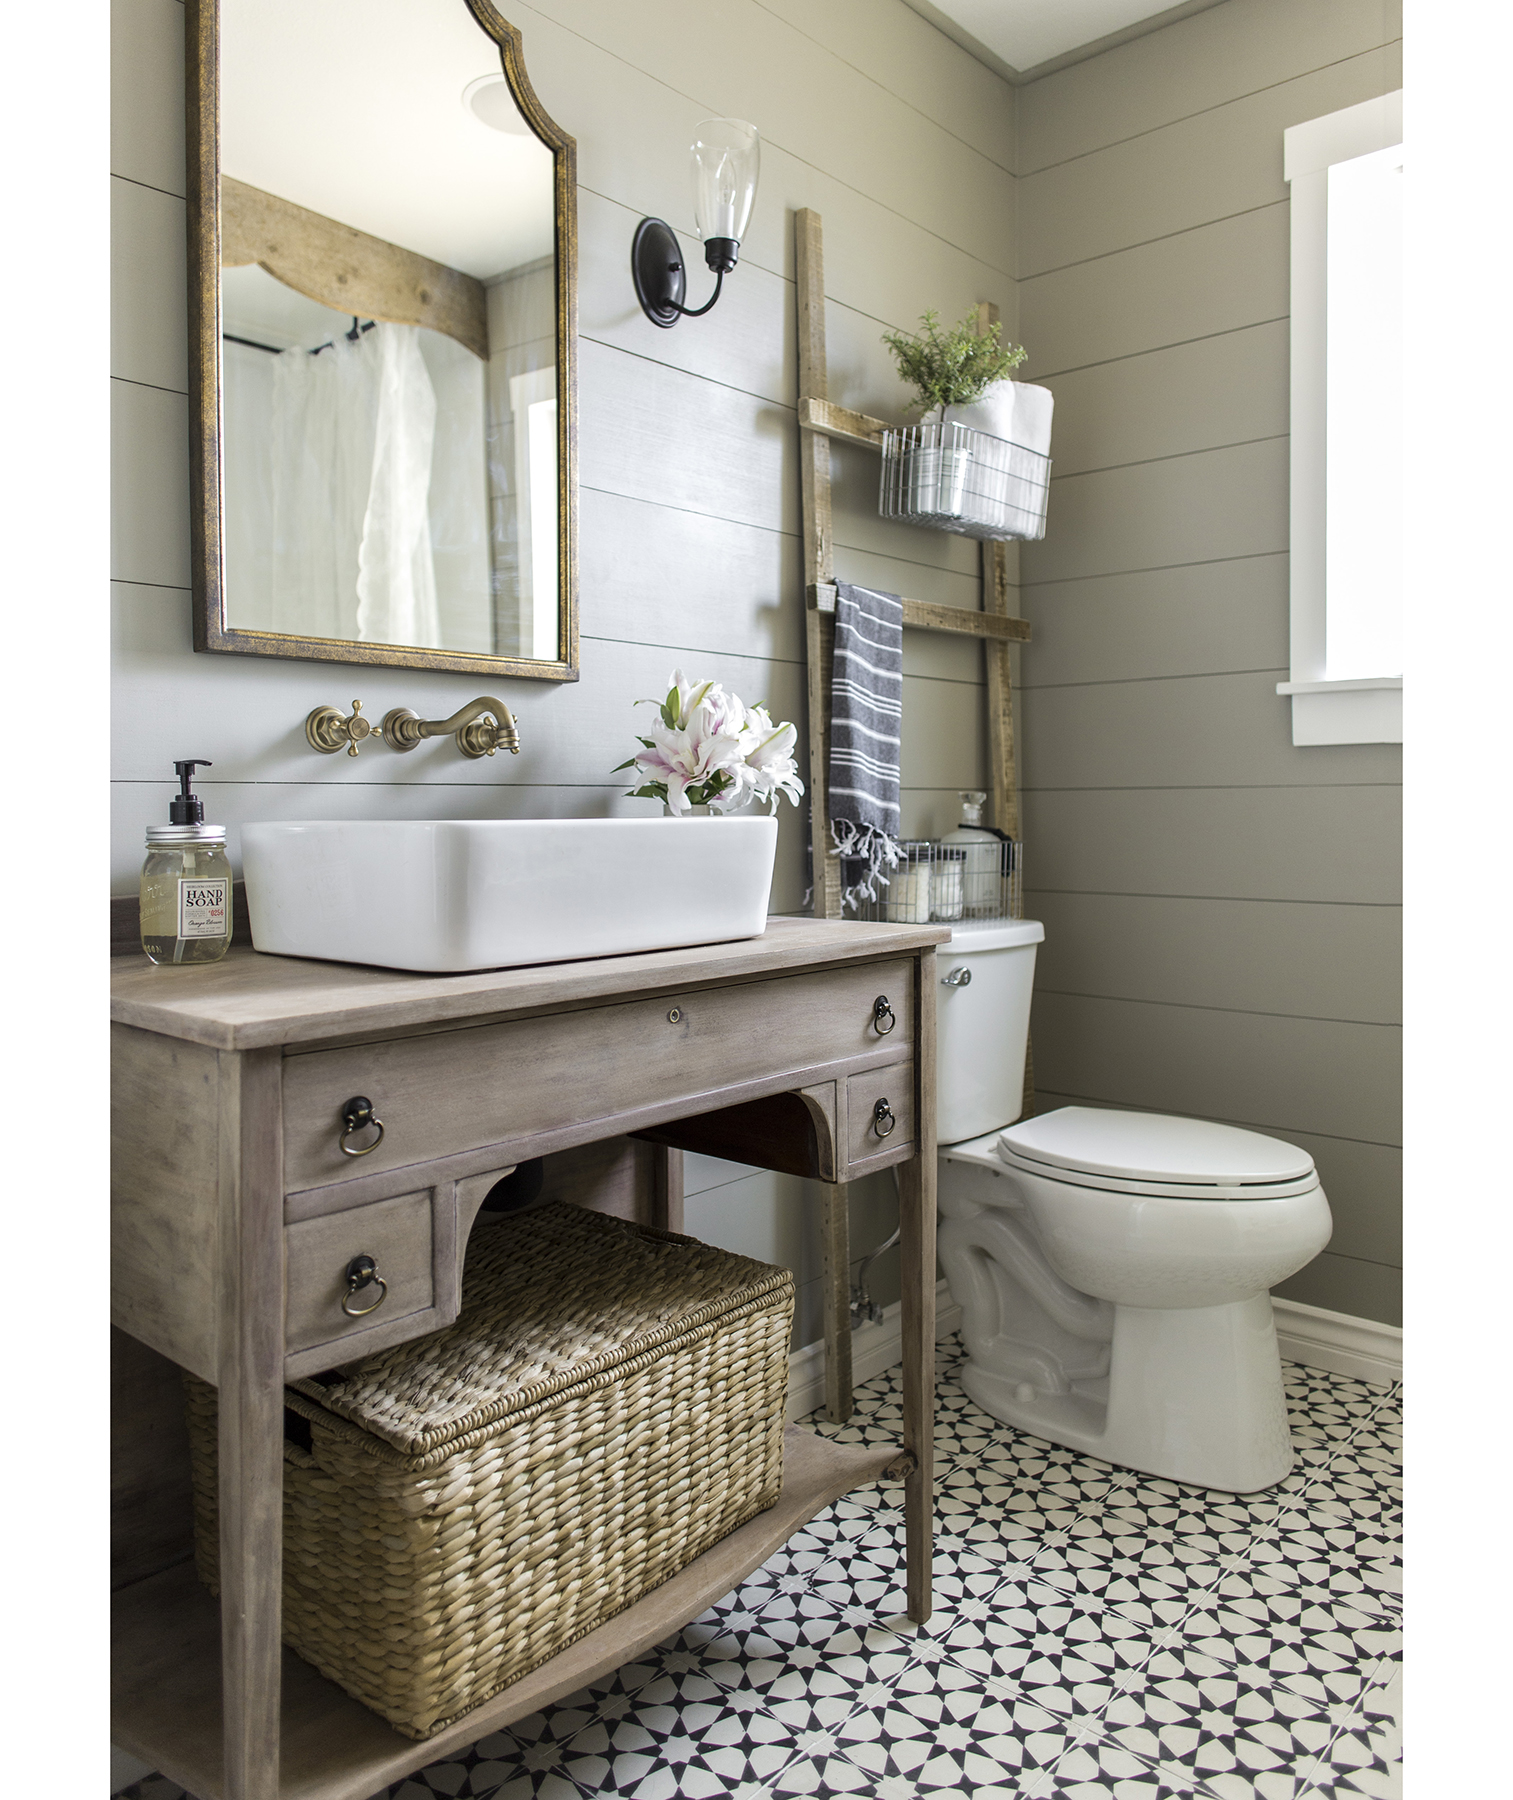 Bathroom with storage above the toilet